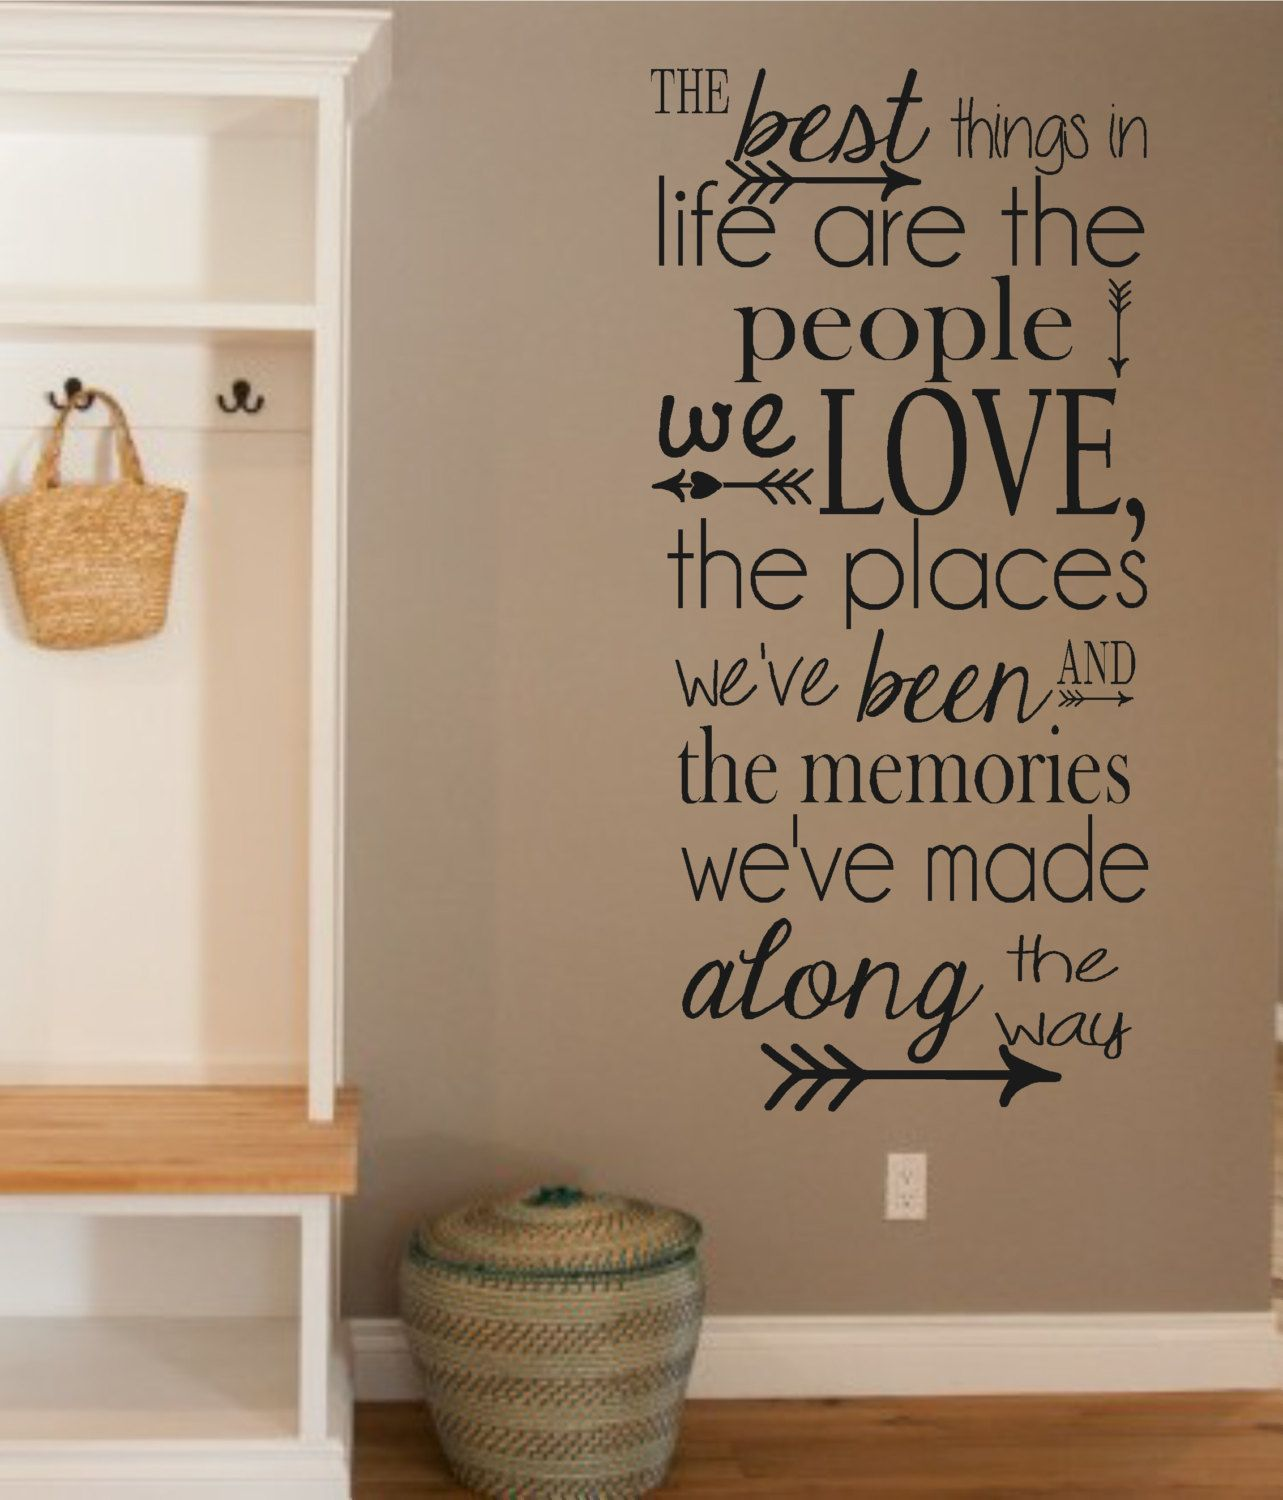 Vinyl wall decal the best things in life people love memories vinyl wall decal the best things in life people love memories amipublicfo Gallery